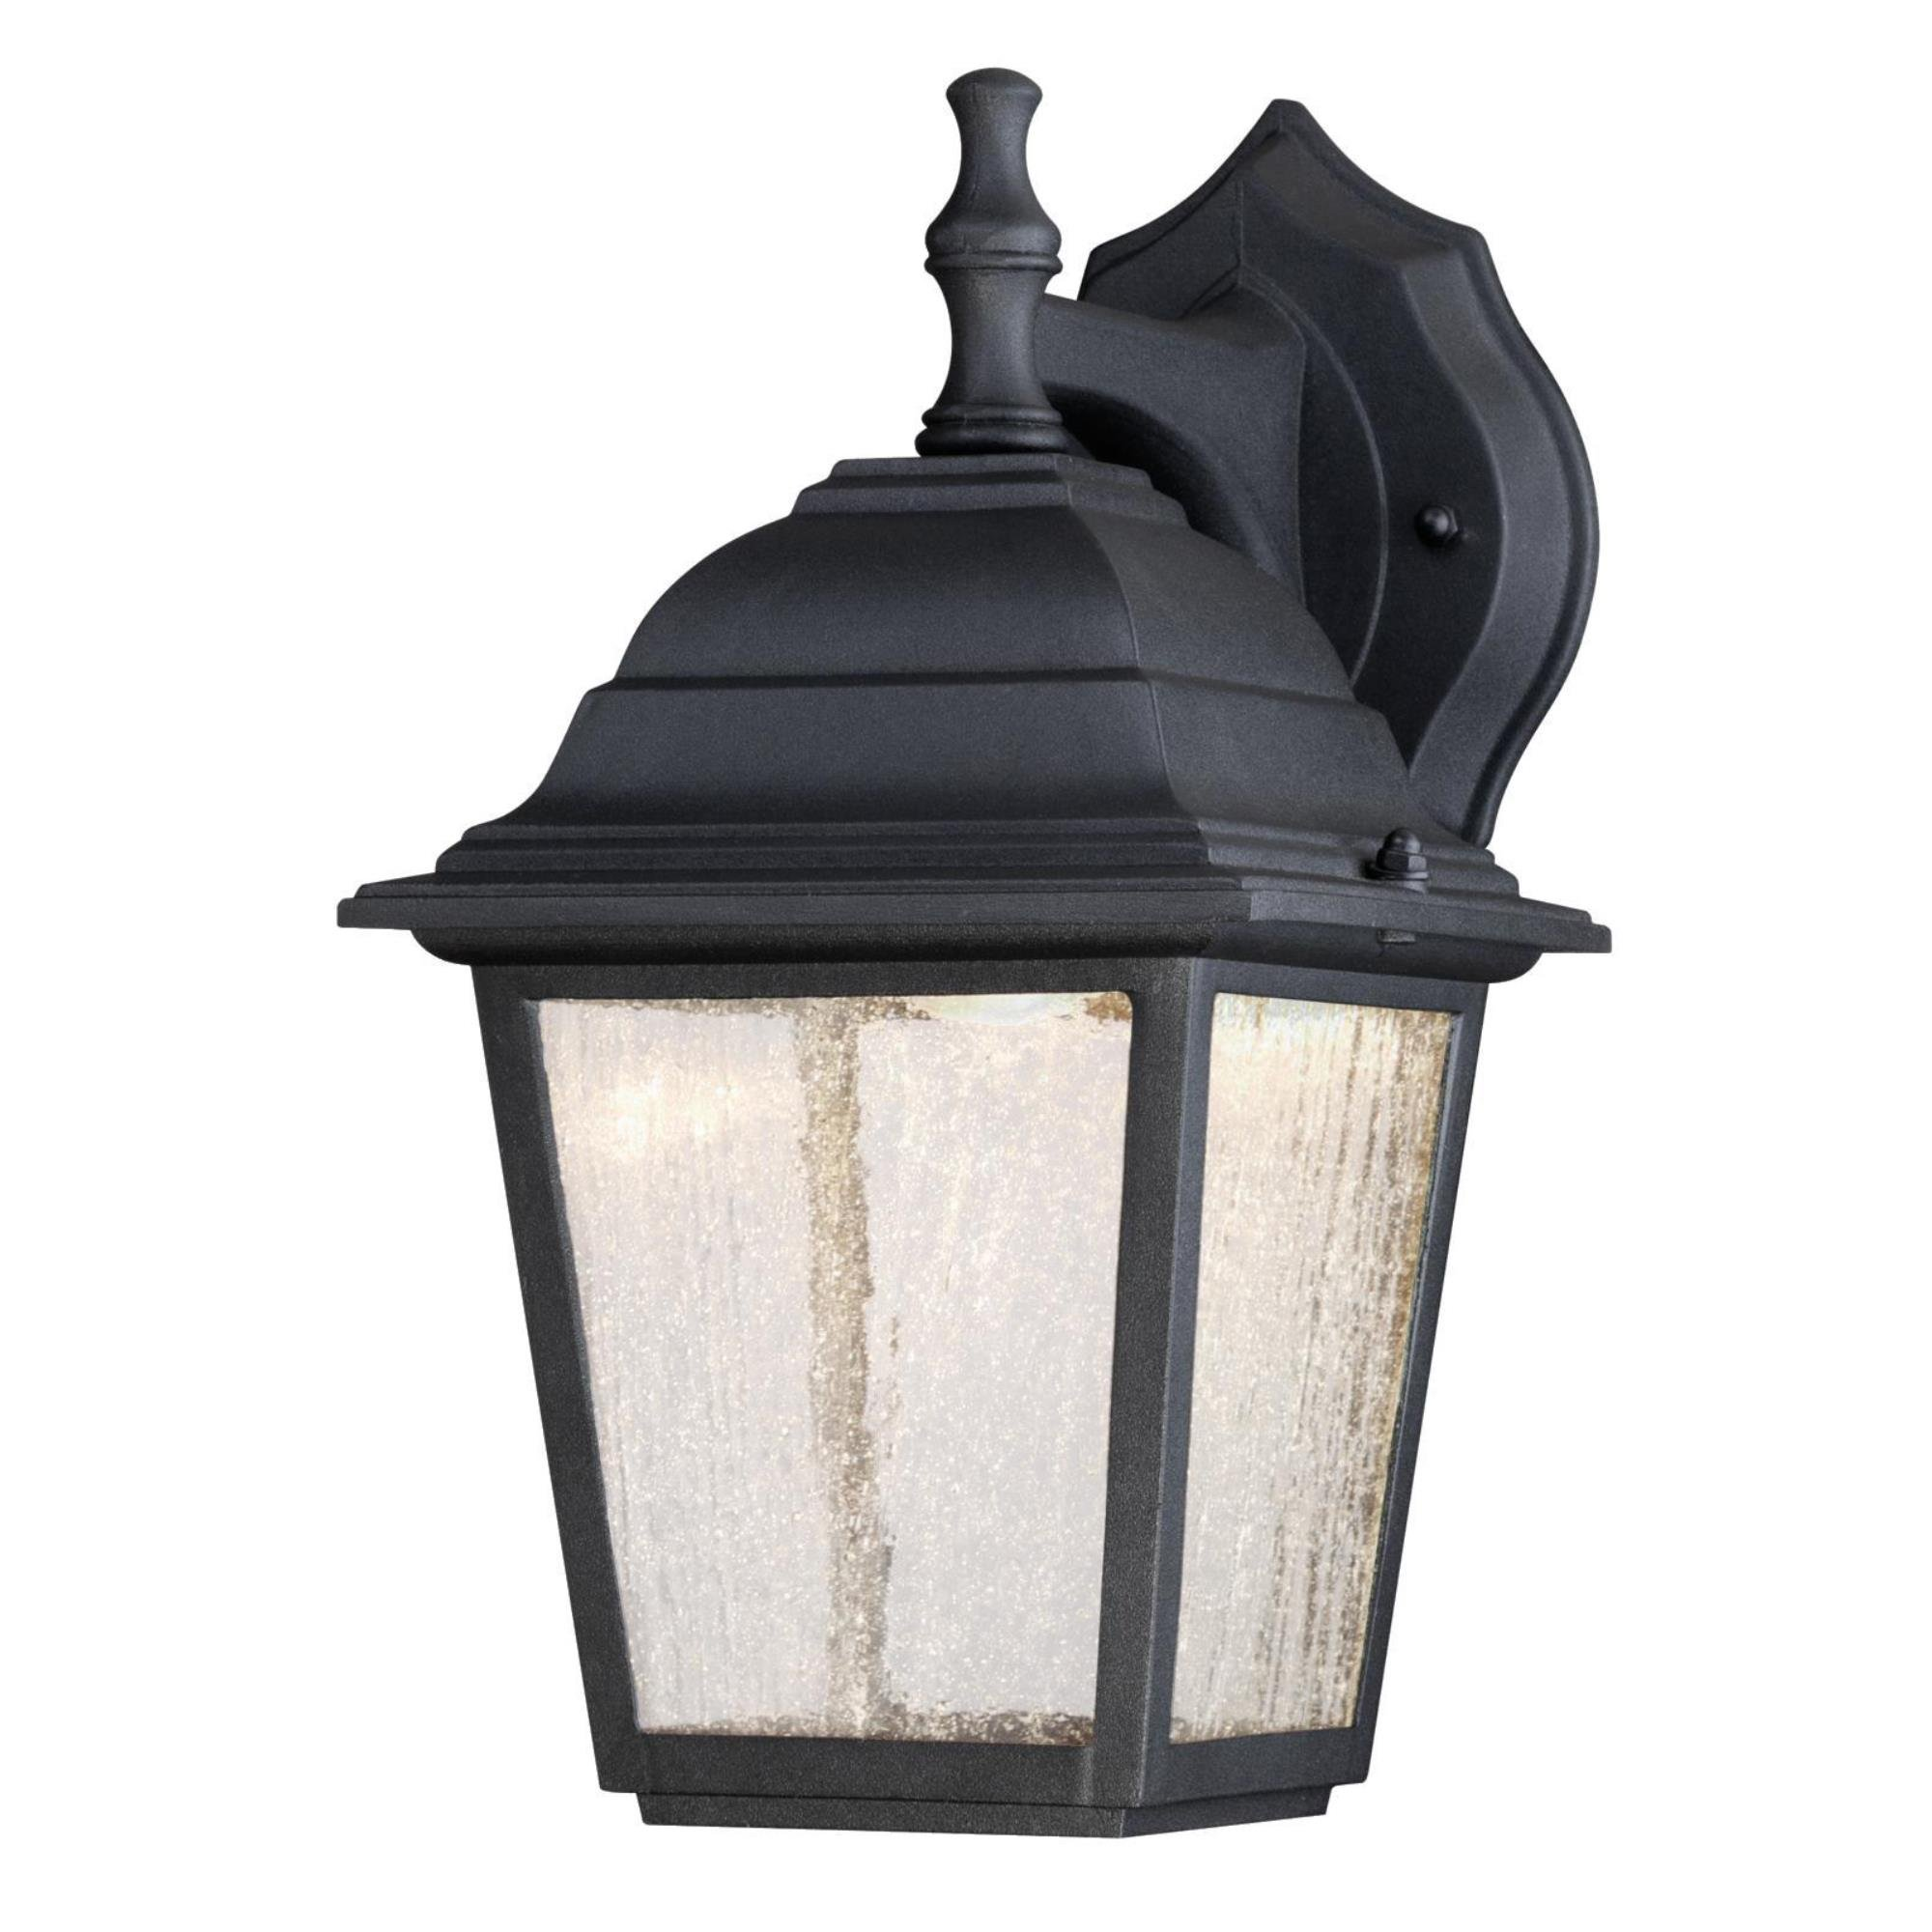 Elegant Patio Lighting Wall Lantern Black Antique Vintage Exterior Light Fixture 24034640018 Ebay